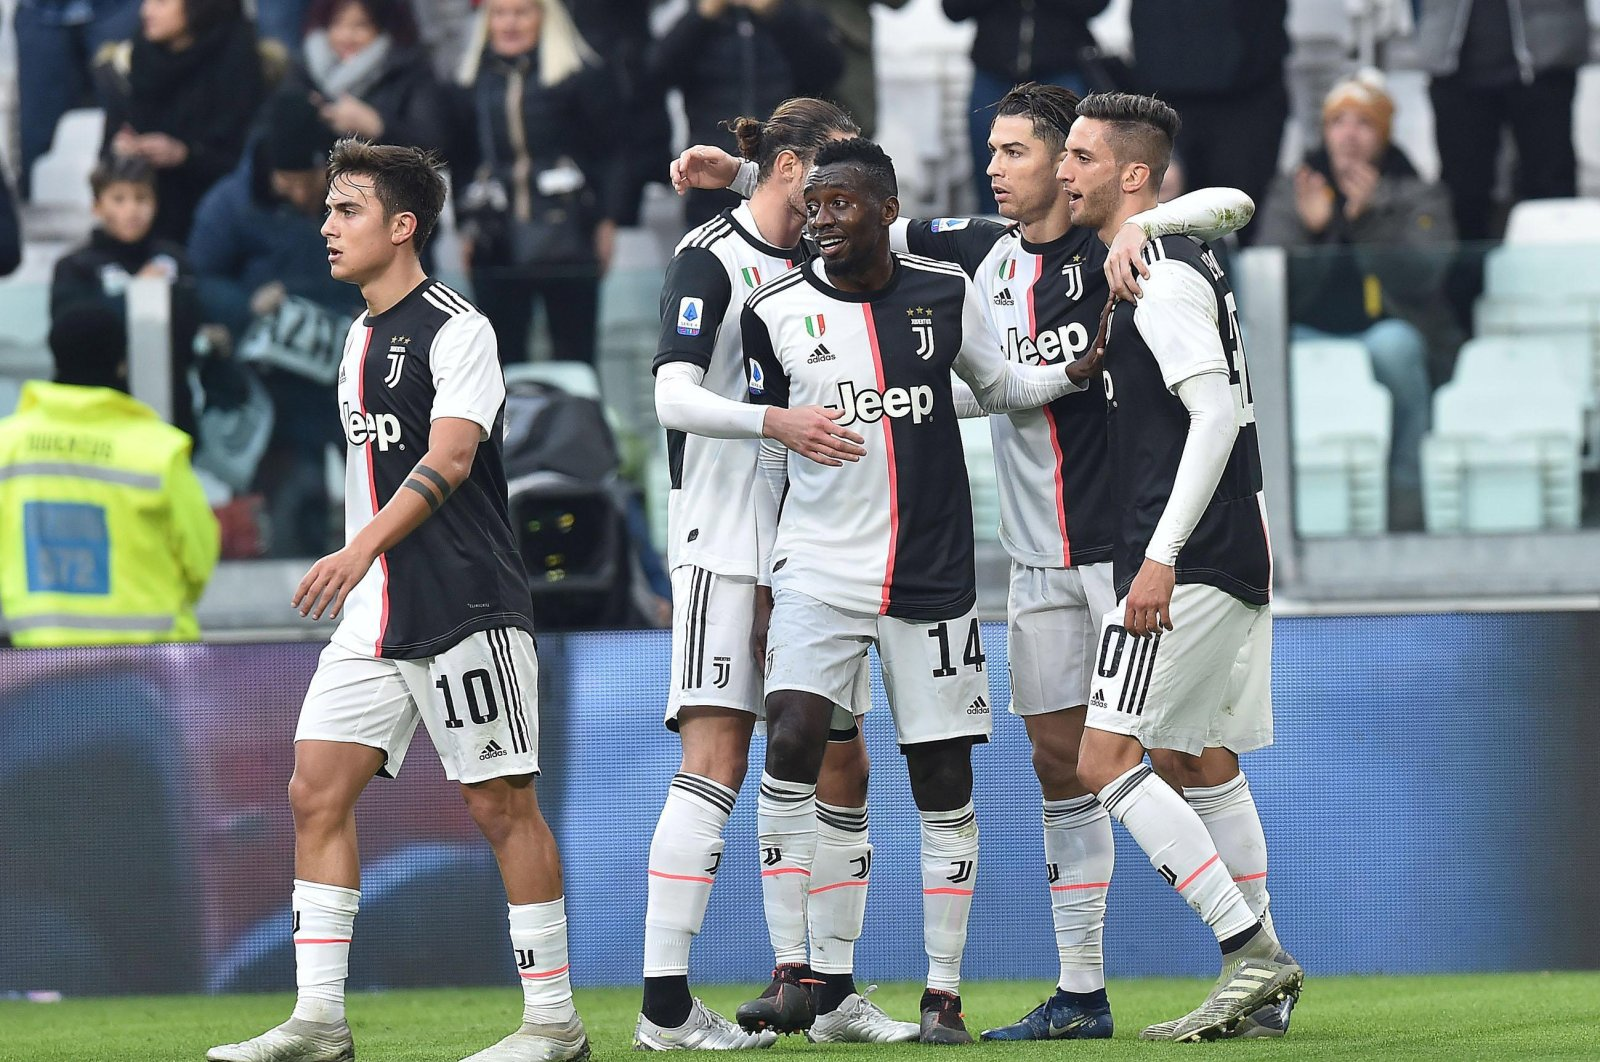 Juventus players celebrate a goal during a Serie A match against Udinese Calcio in Turin, Dec. 15, 2019. (EPA Photo)